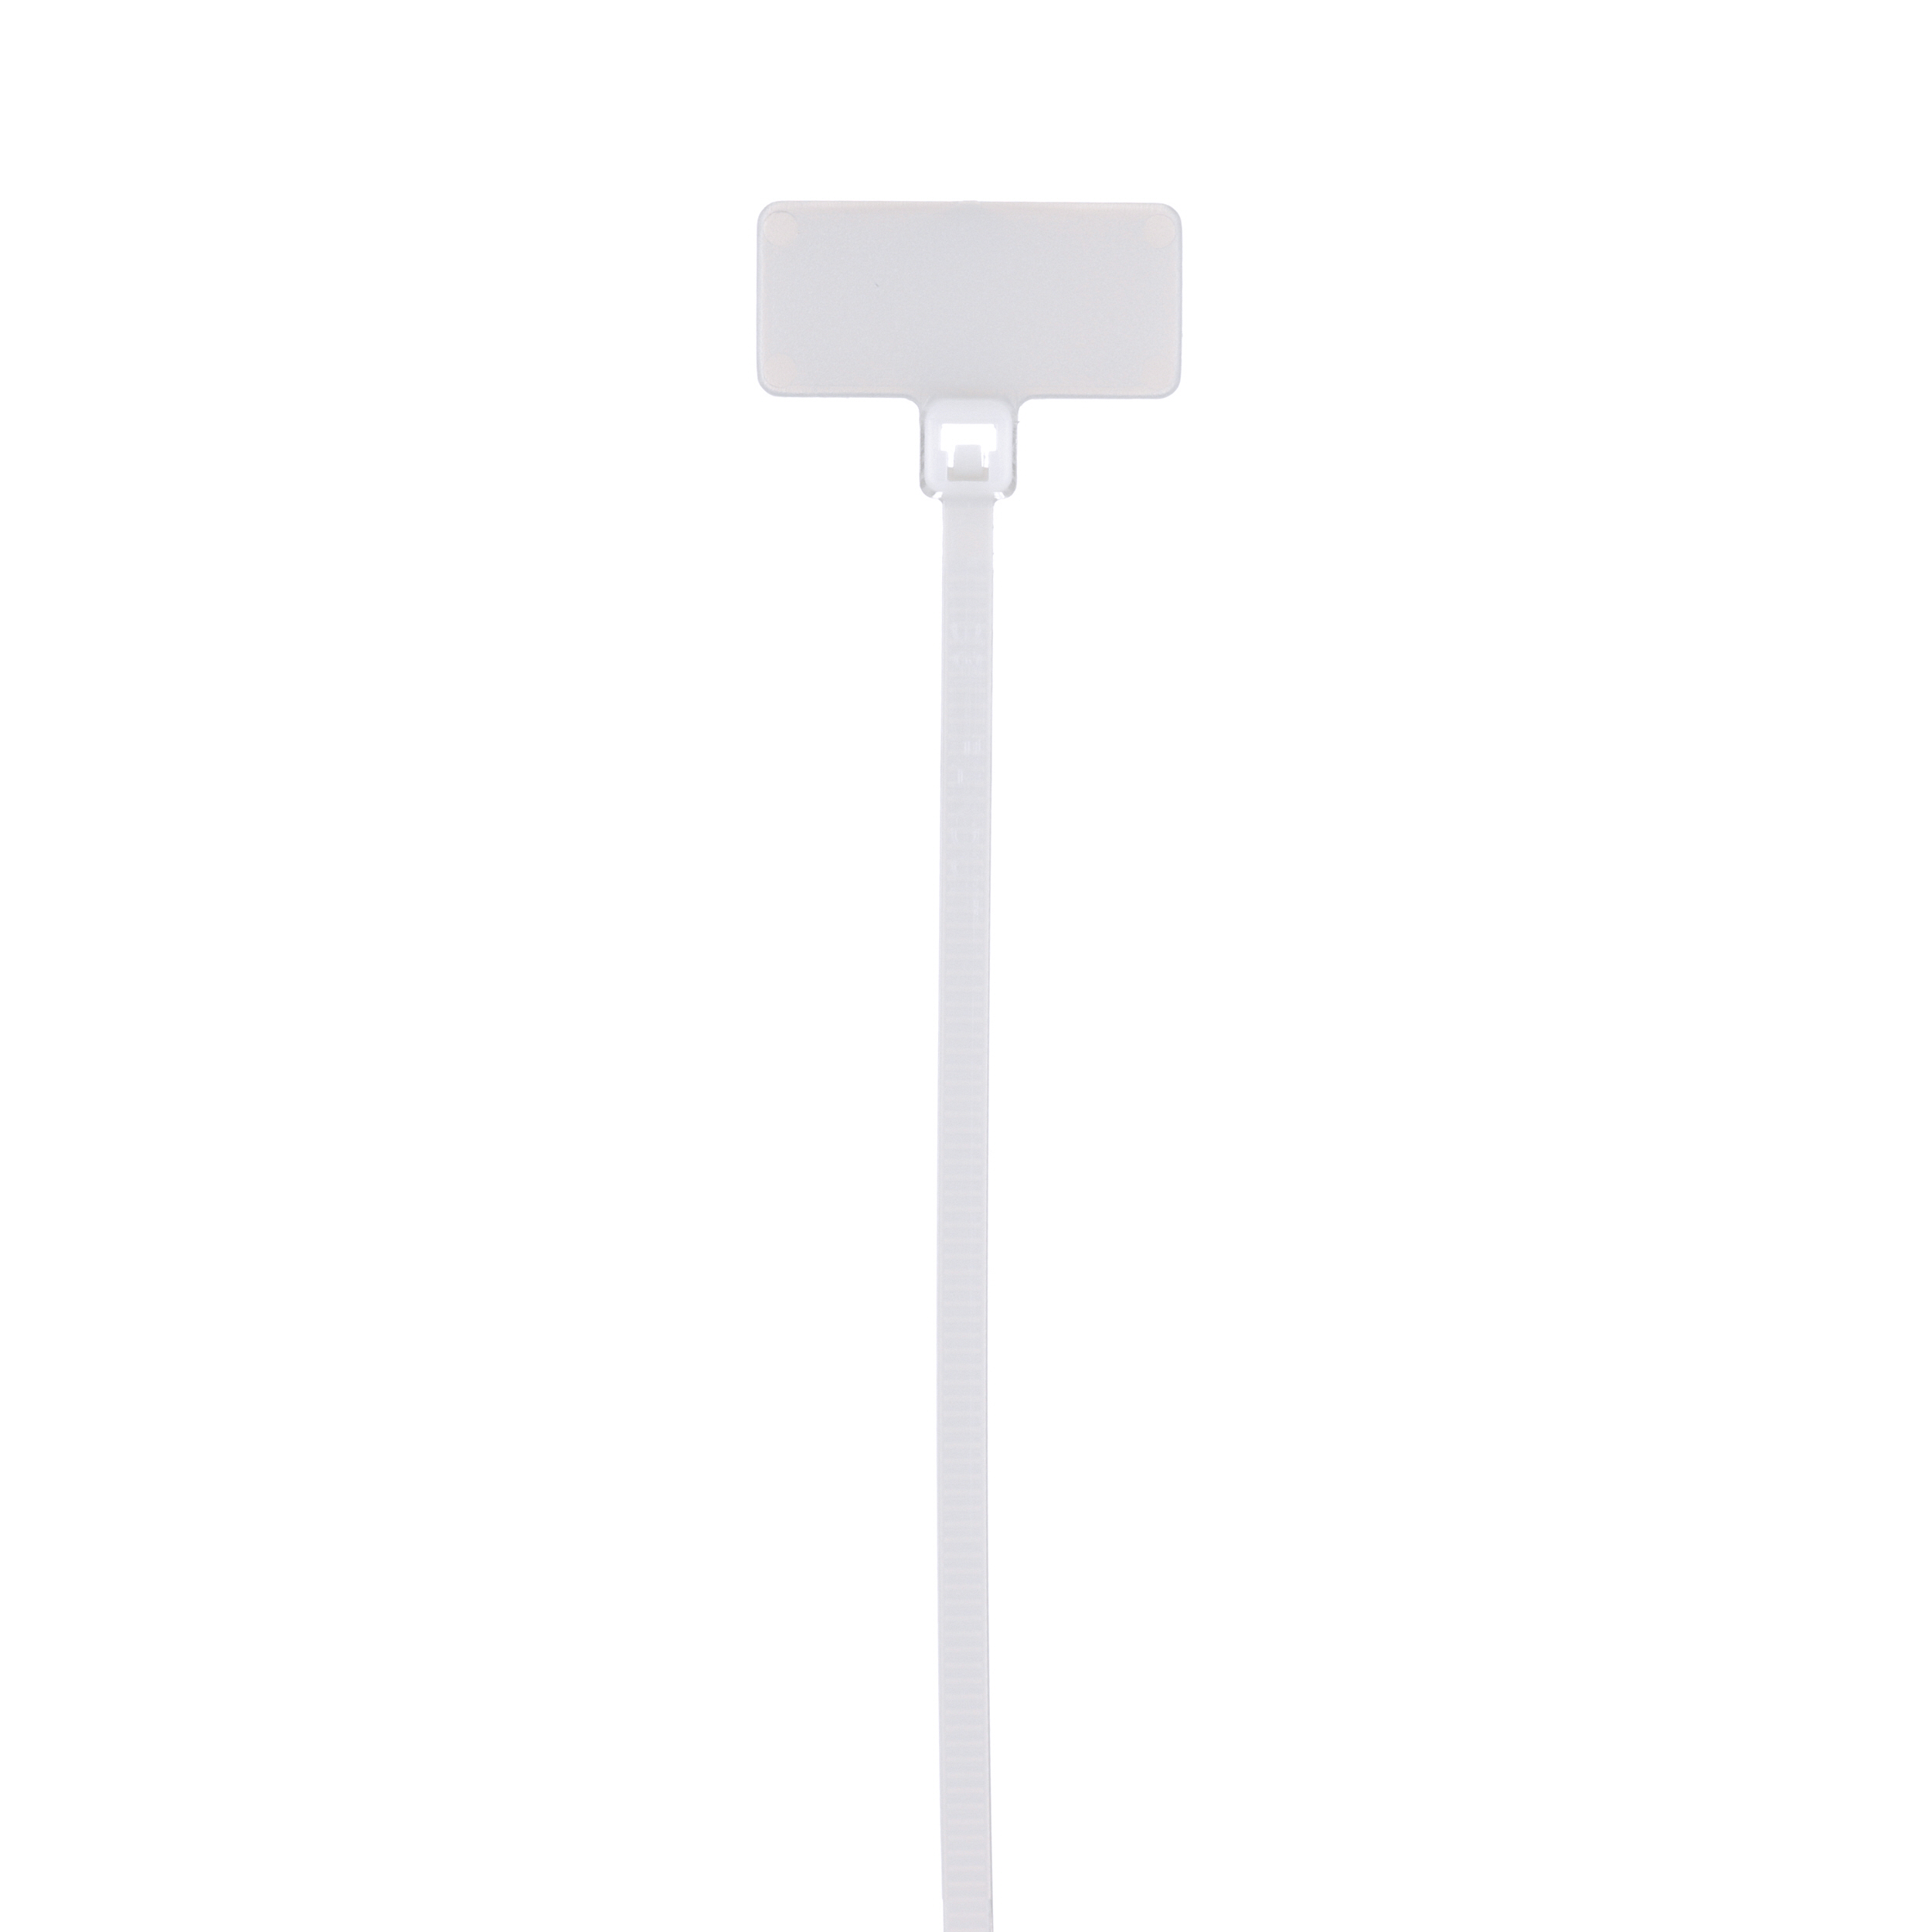 Panduit PLF1M-M White Cable Tie PACK OF 1000